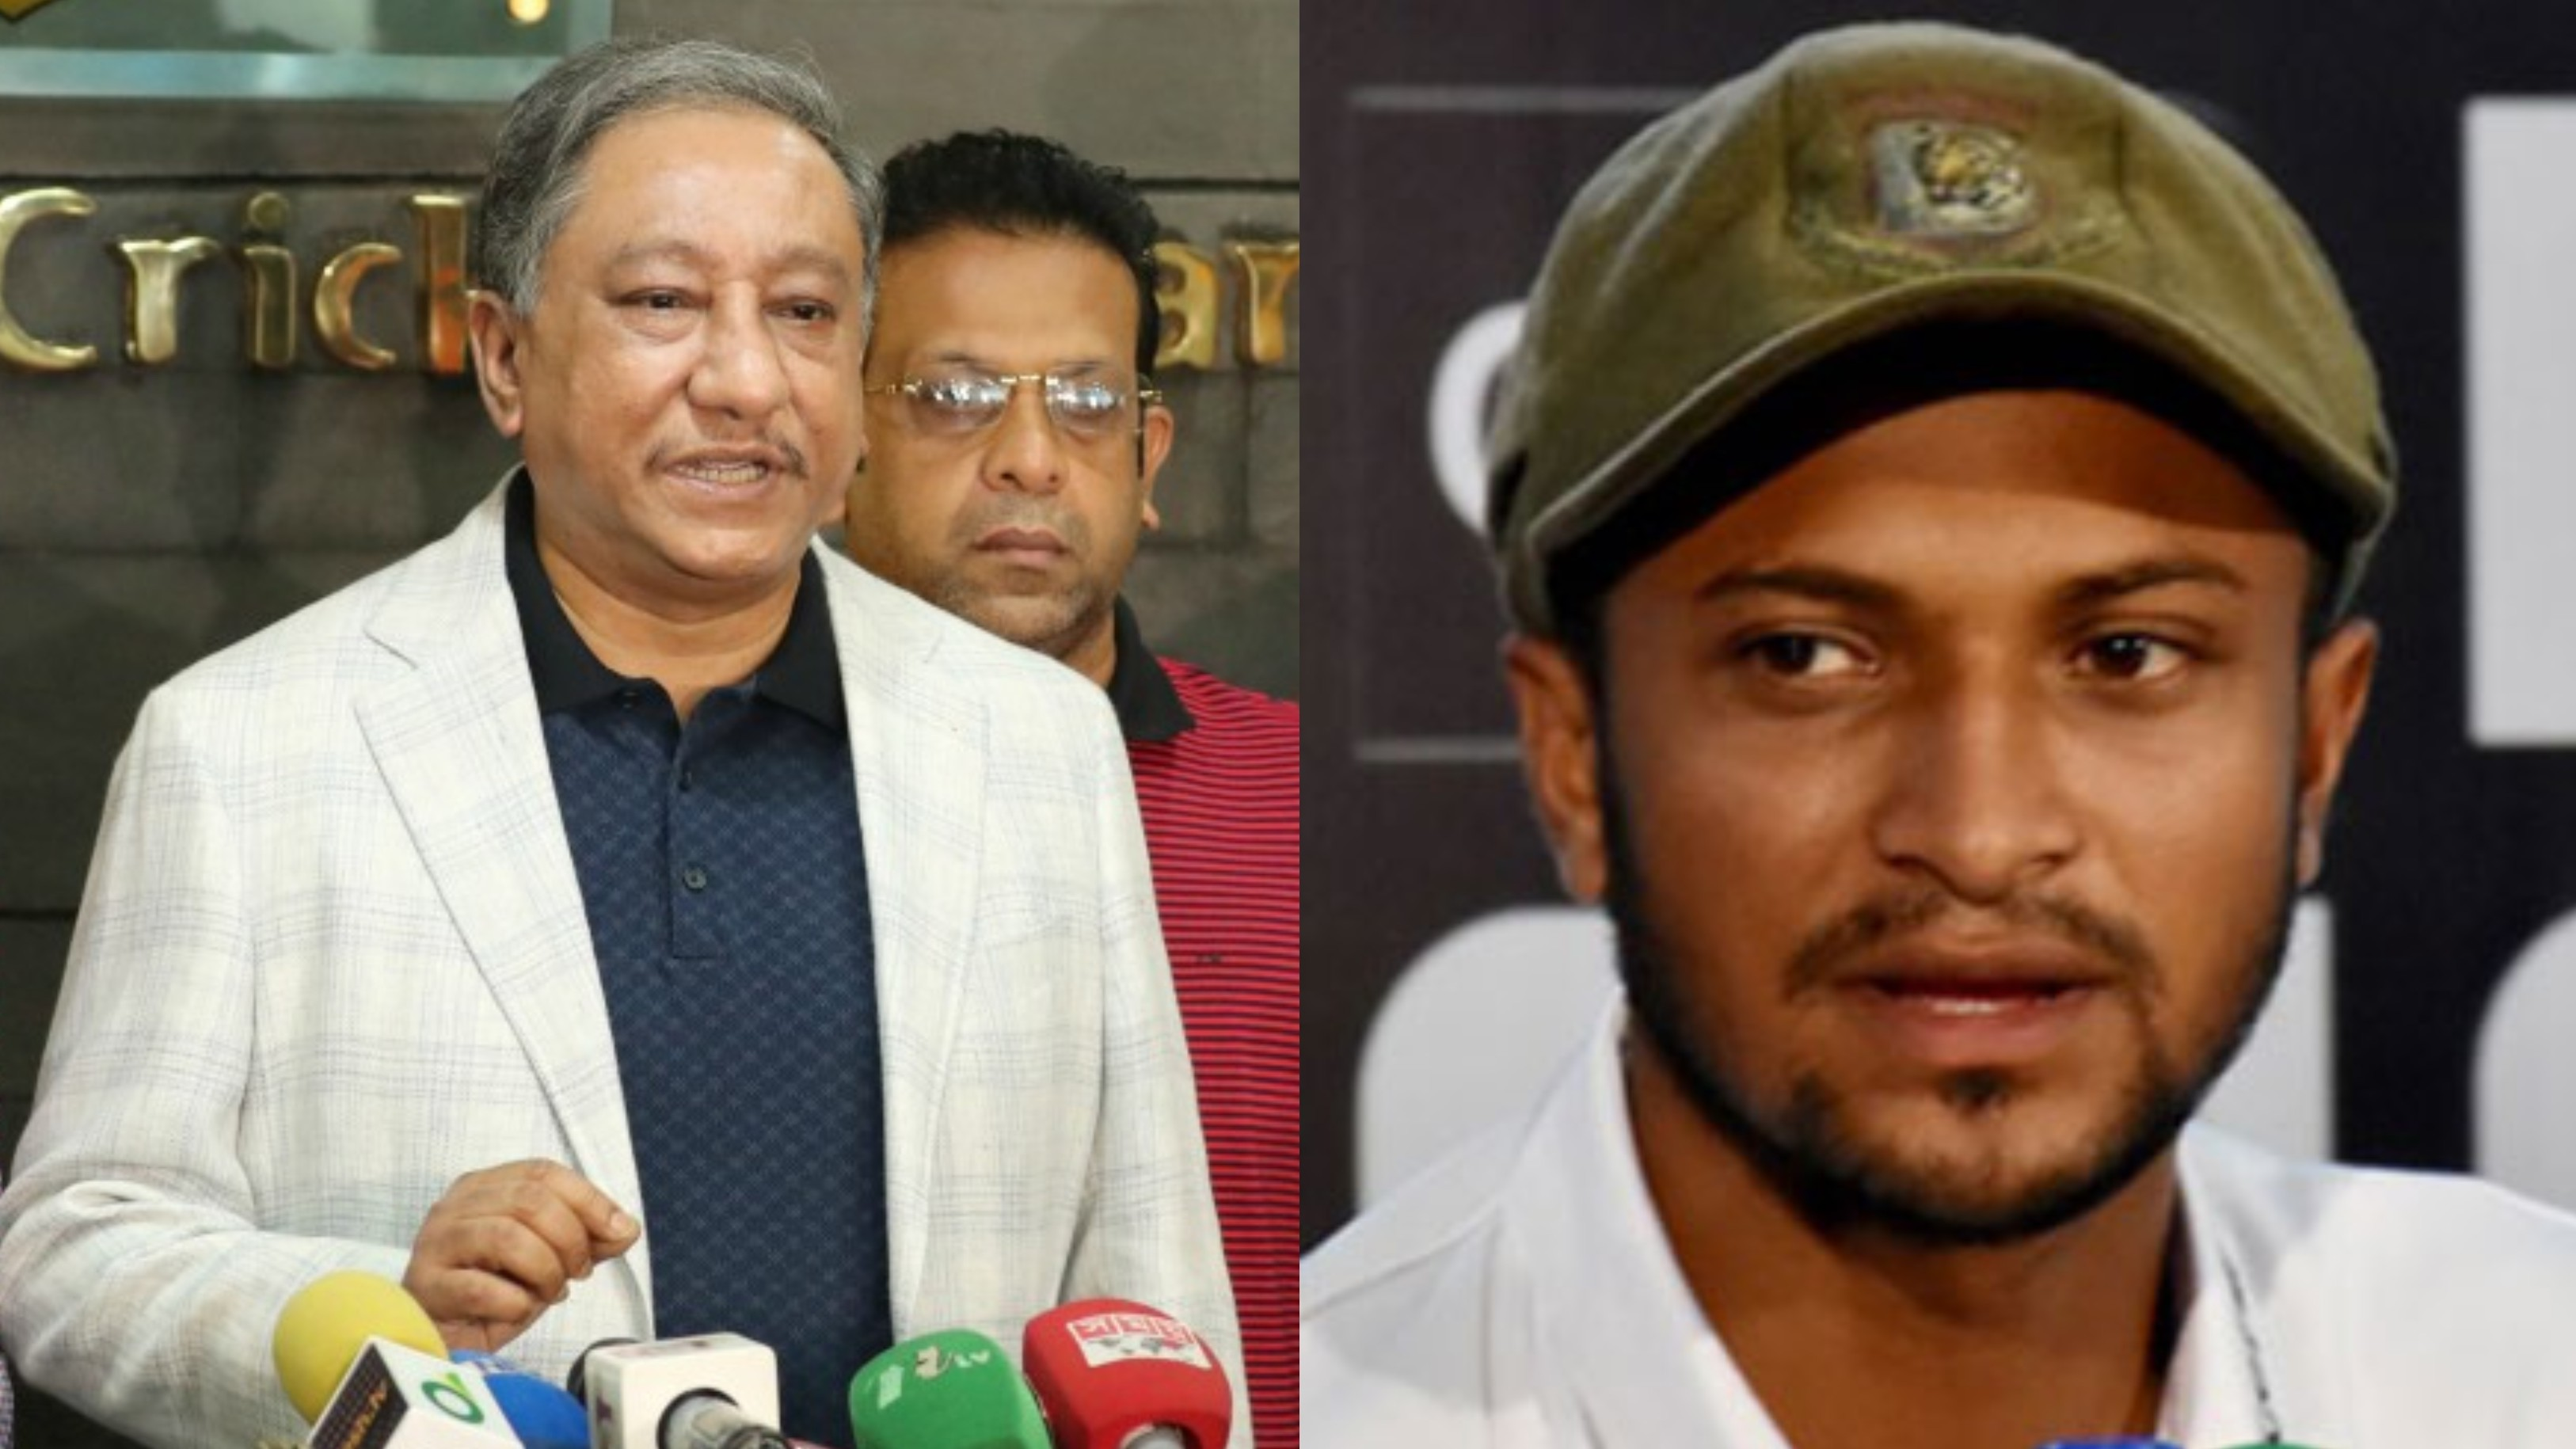 Shakib-Al-Hasan yet to discuss Test captaincy future with BCB, confirms chief Nazmul Hasan